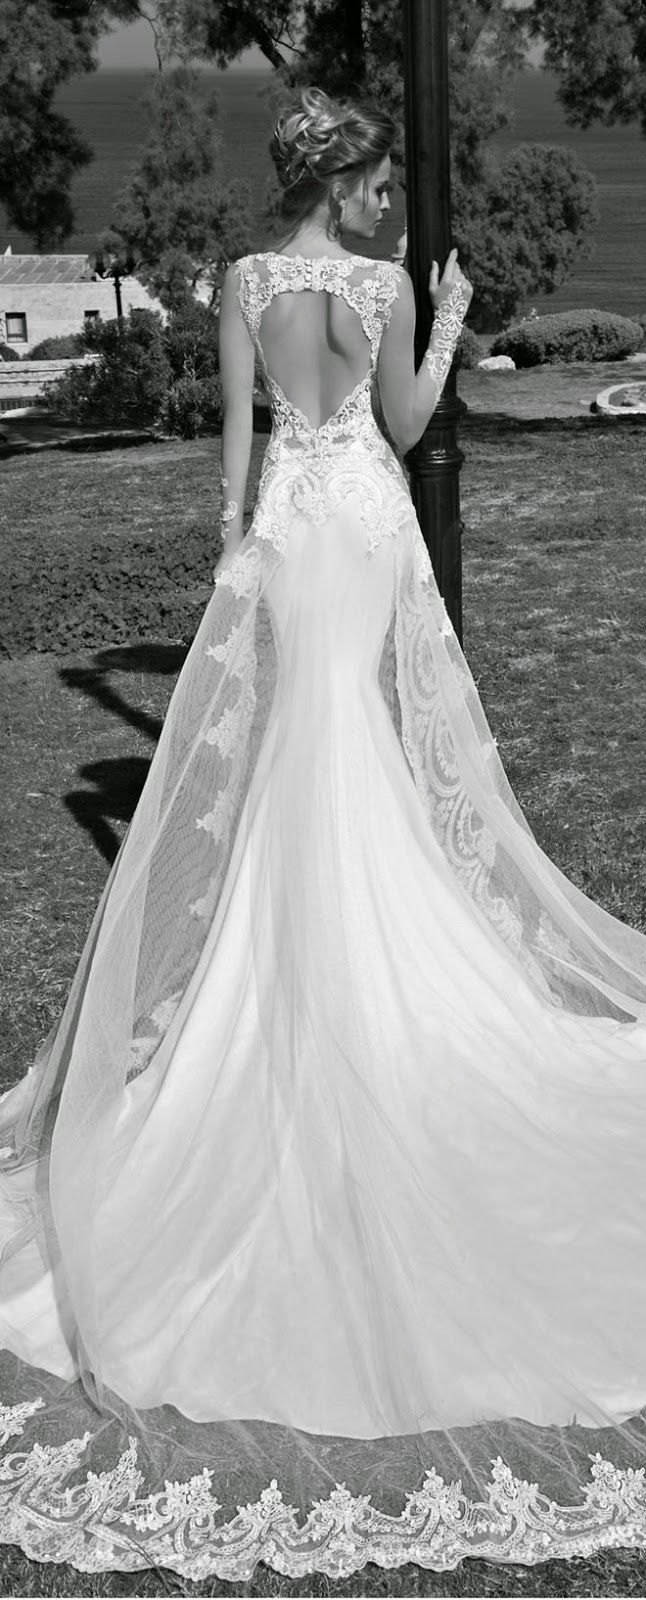 Galia Lahav Spring 2015 : La Dolce Vita Bridal Collection - Belle the Magazine . The Wedding Blog For The Sophisticated Bride